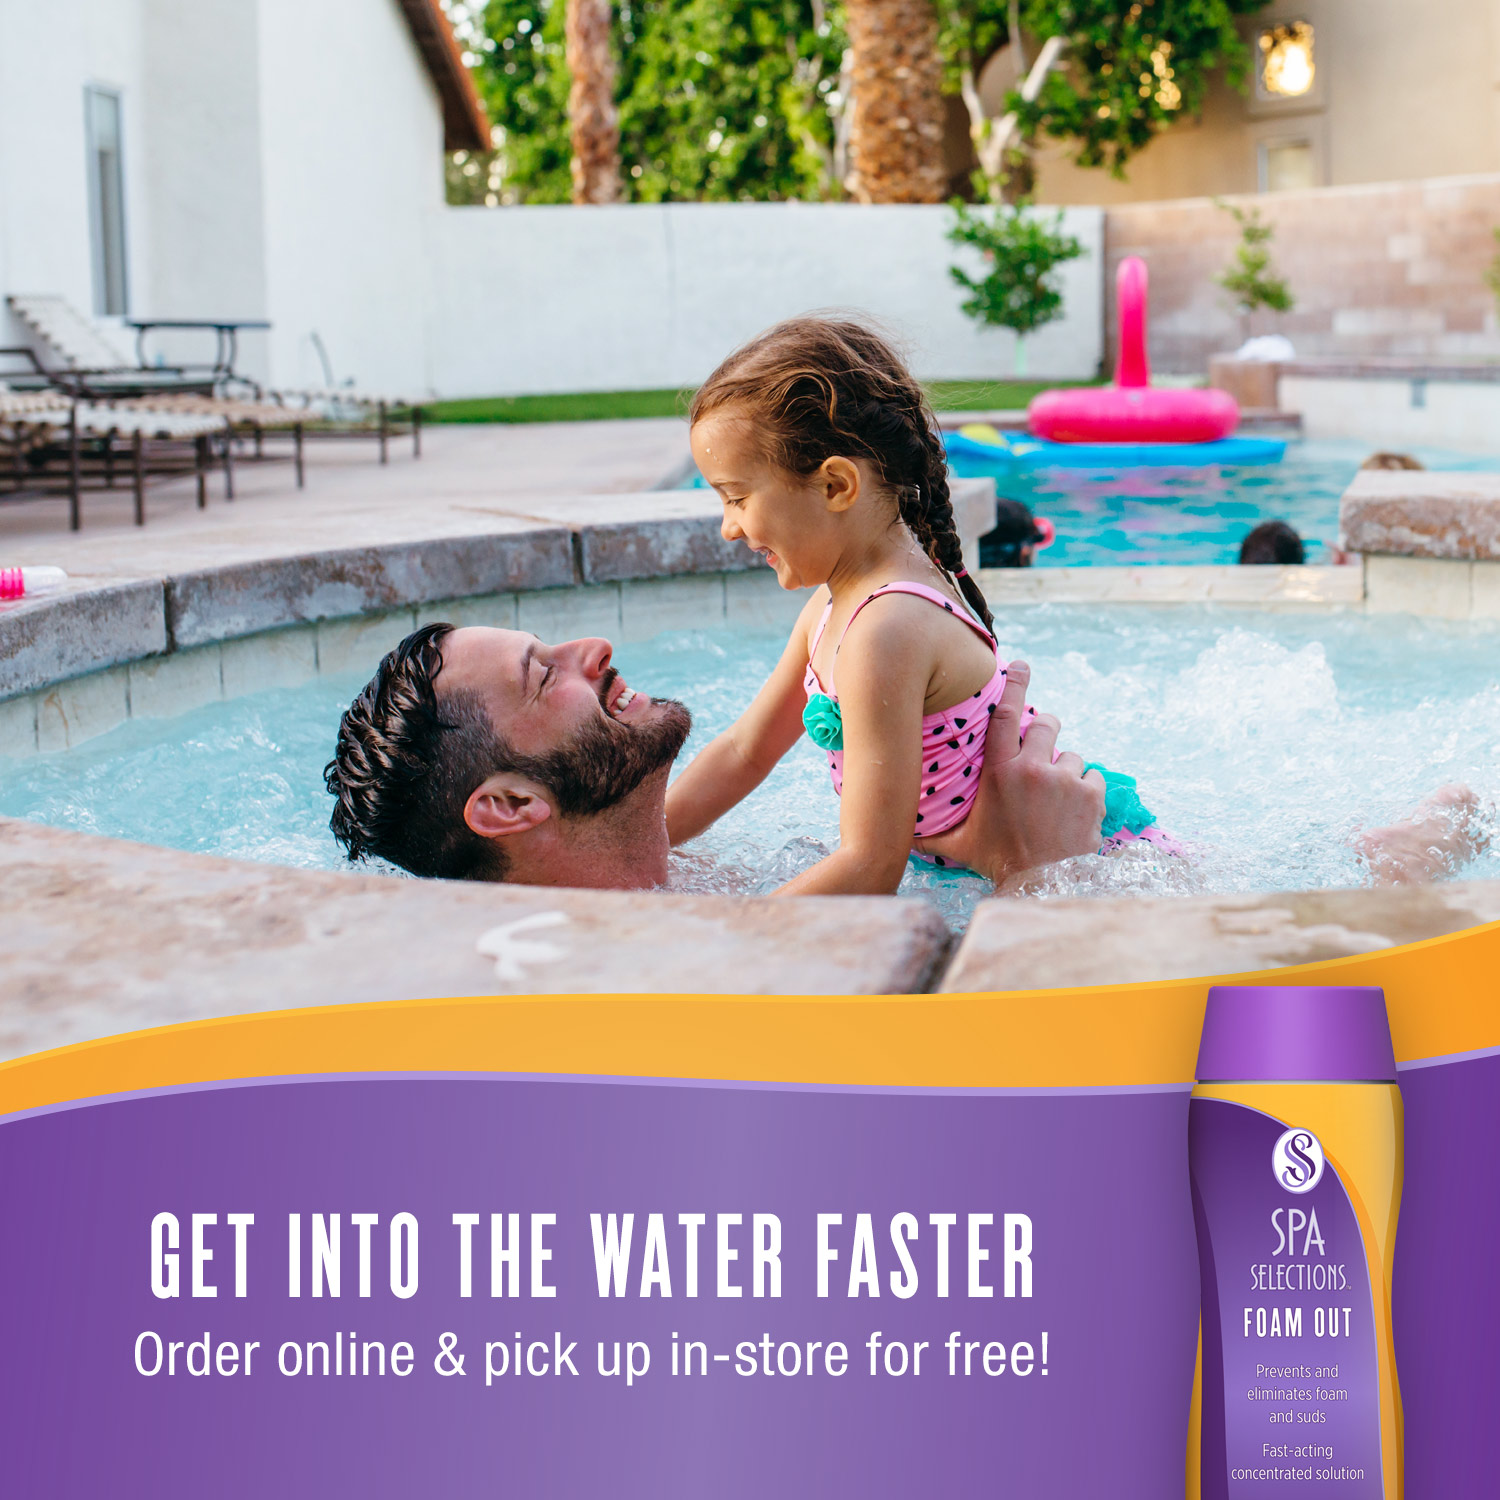 Father and daughter enjoying outdoor hot tub. Get into the water faster with Spa Selections Foam Out, order online and pick up in-store for free!